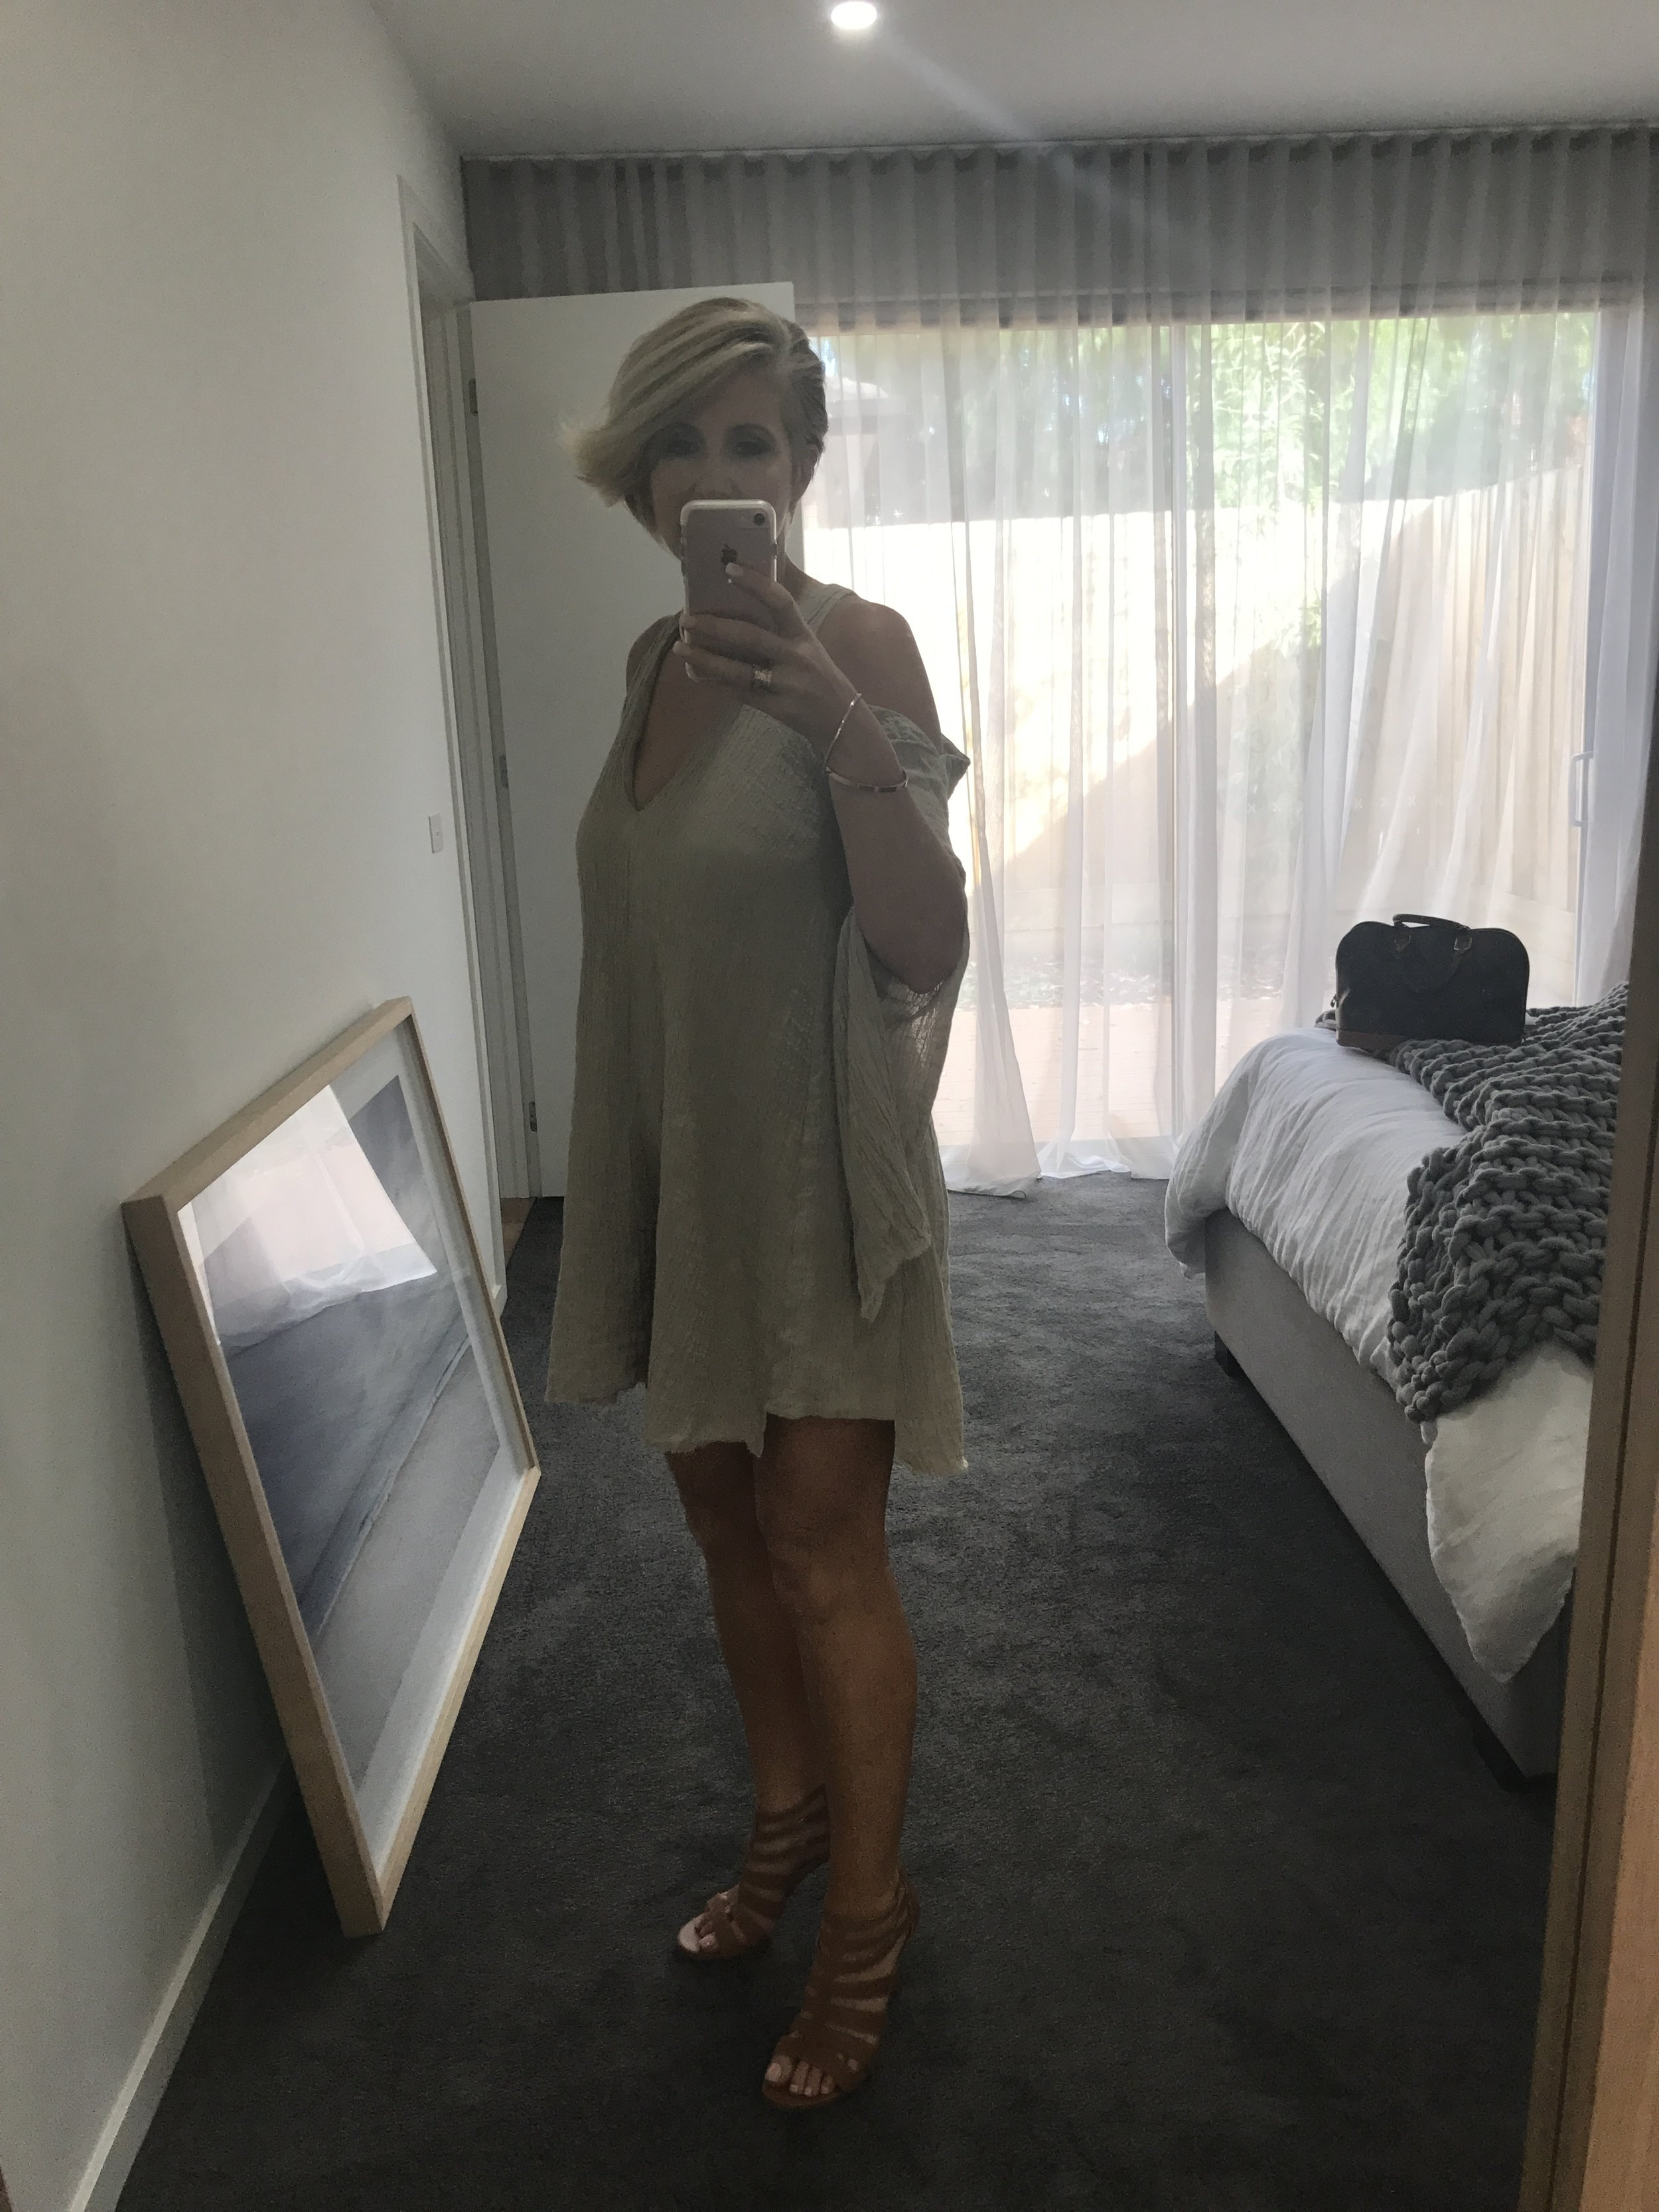 KITX 2016 collection dress - I think I am down to $1 per wear with all Kit's dresses. I wore this to lunch this day, then added heels to head out to the theatre.